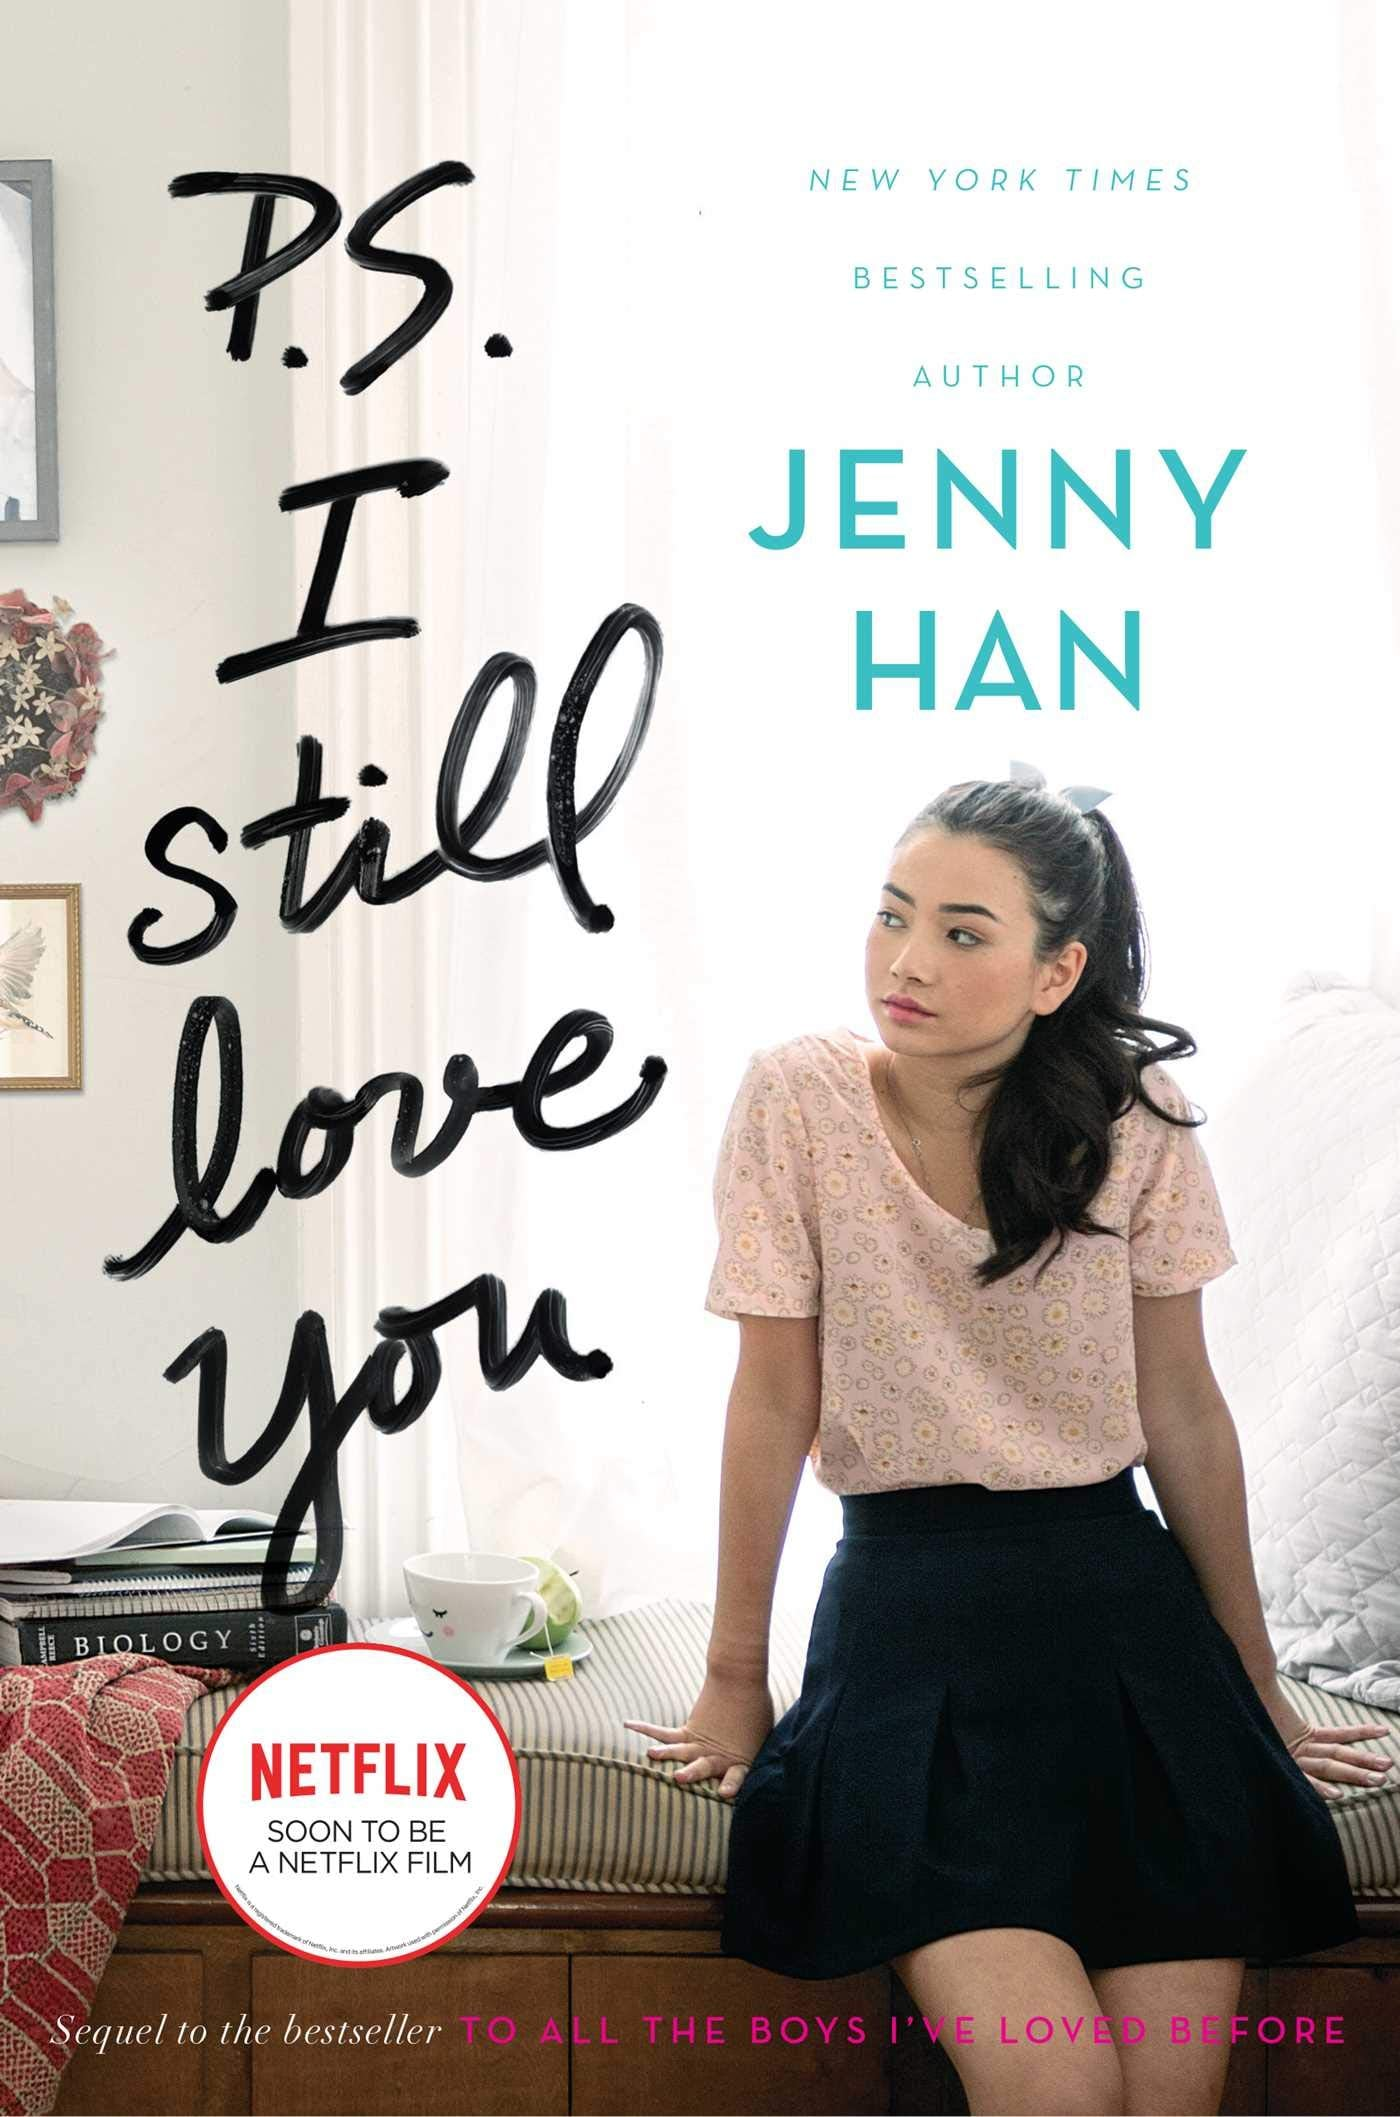 If You Want to See How the Book Compares to the Movie, Here Are All the Spoilers For P.S. I Still Love You